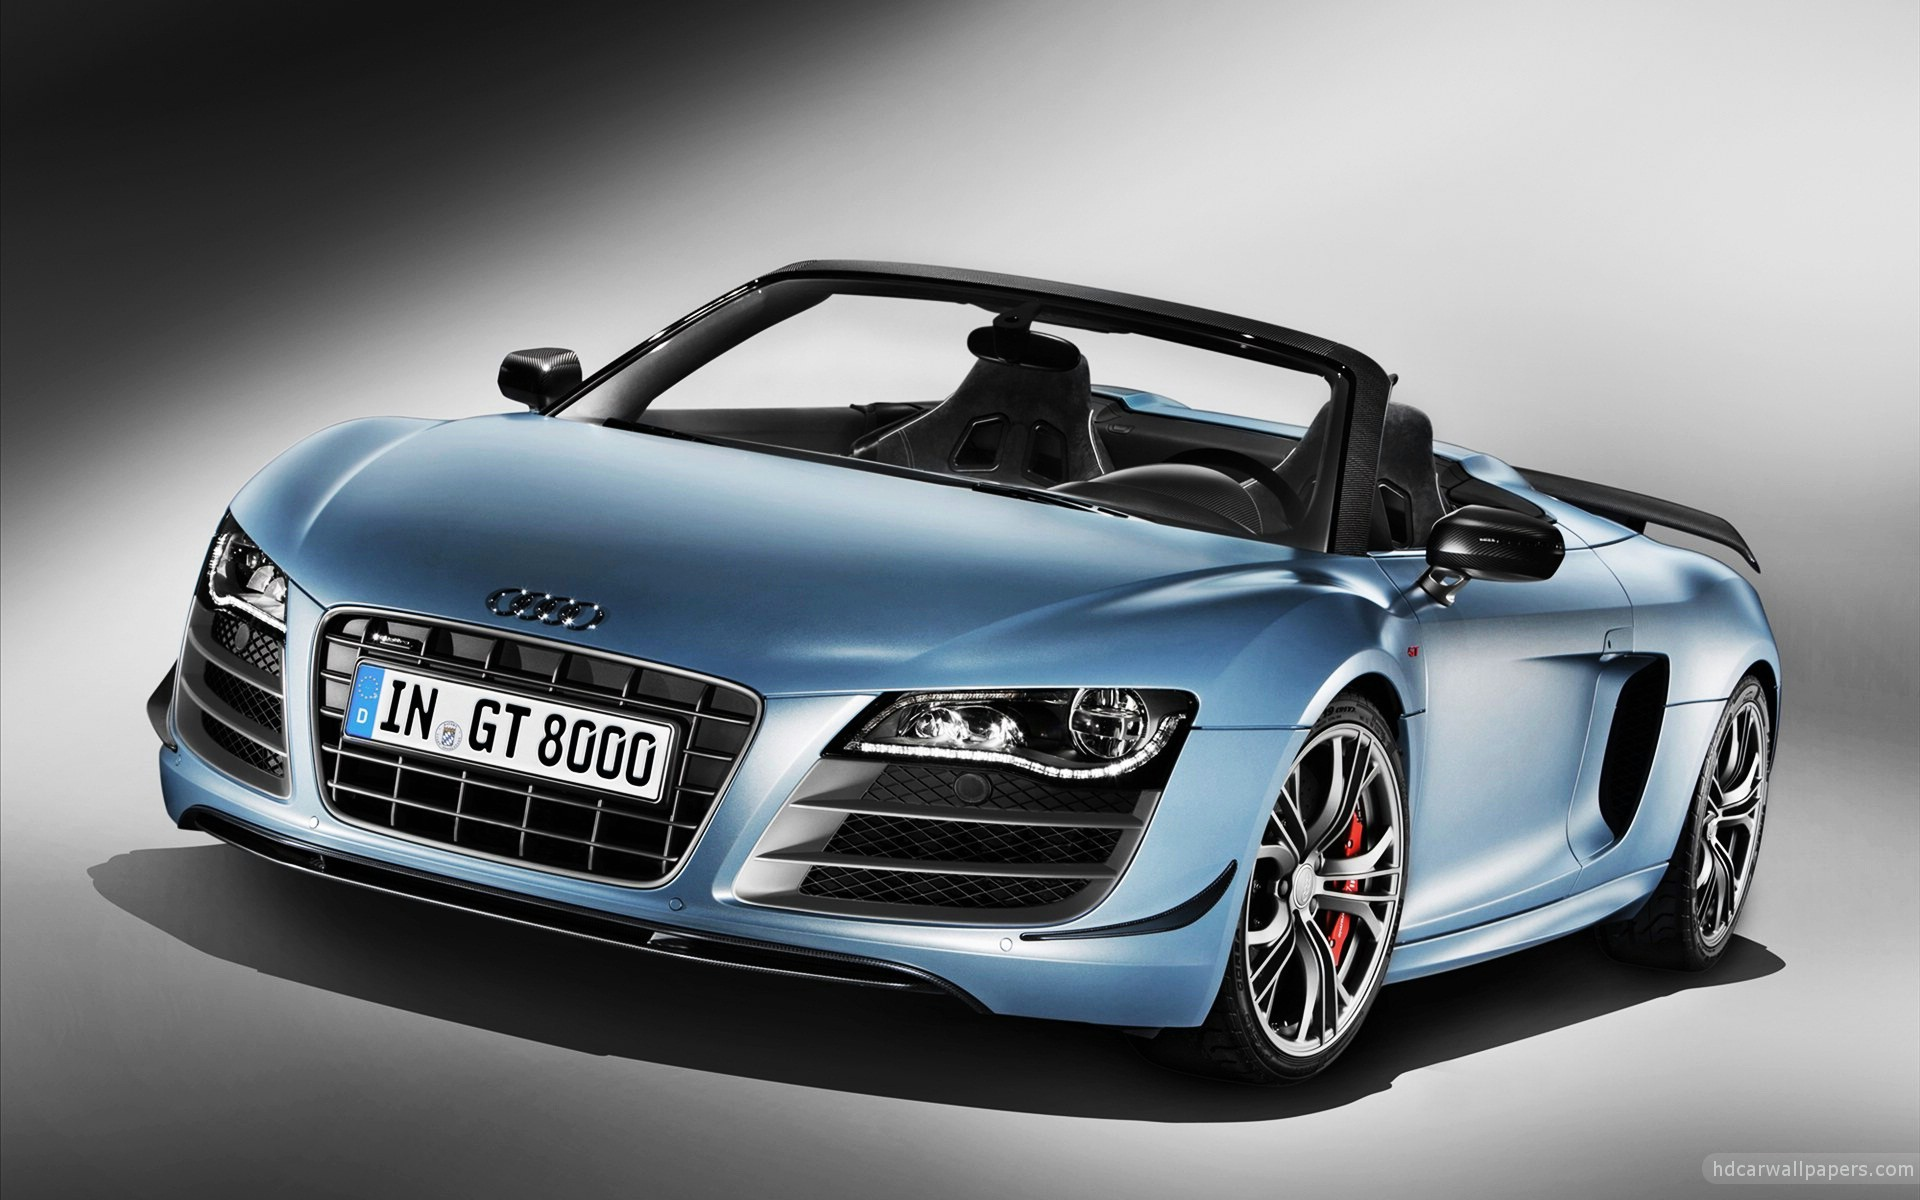 2012 Audi R8 GT Spyder Wallpaper  HD Car Wallpapers